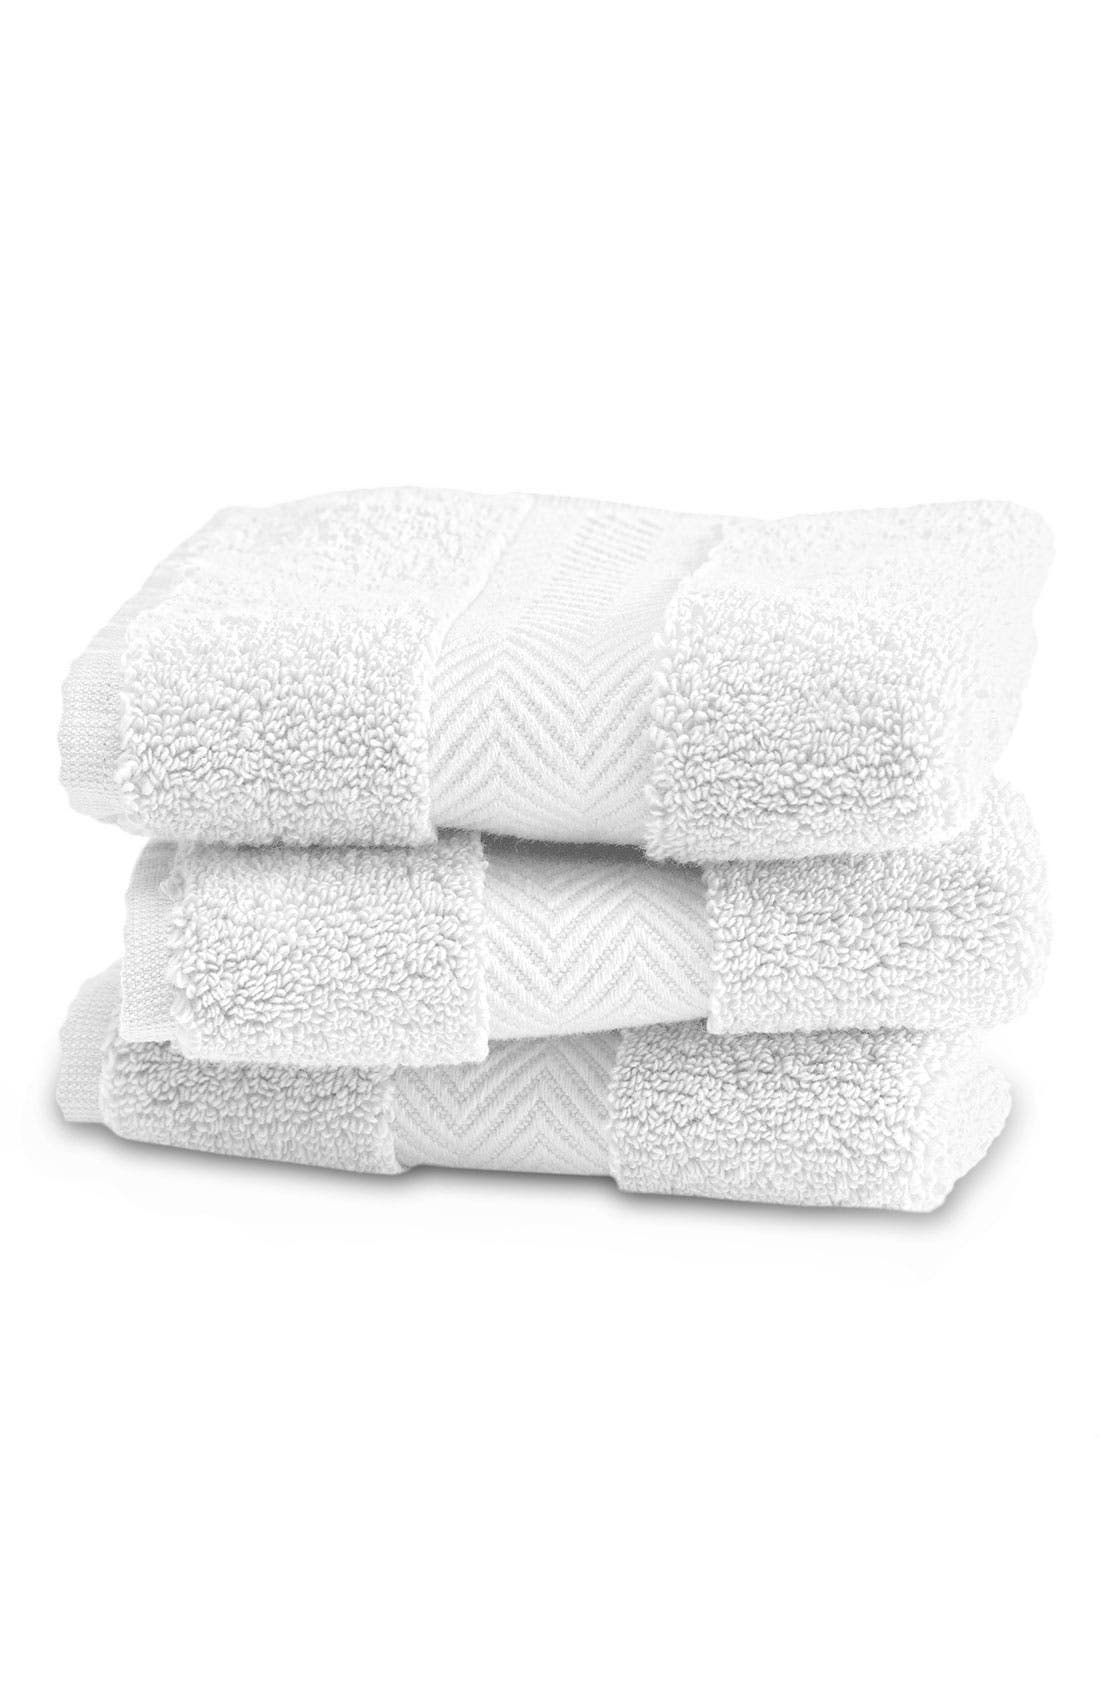 NORDSTROM AT HOME, Hydrocotton Washcloth, Main thumbnail 1, color, WHITE